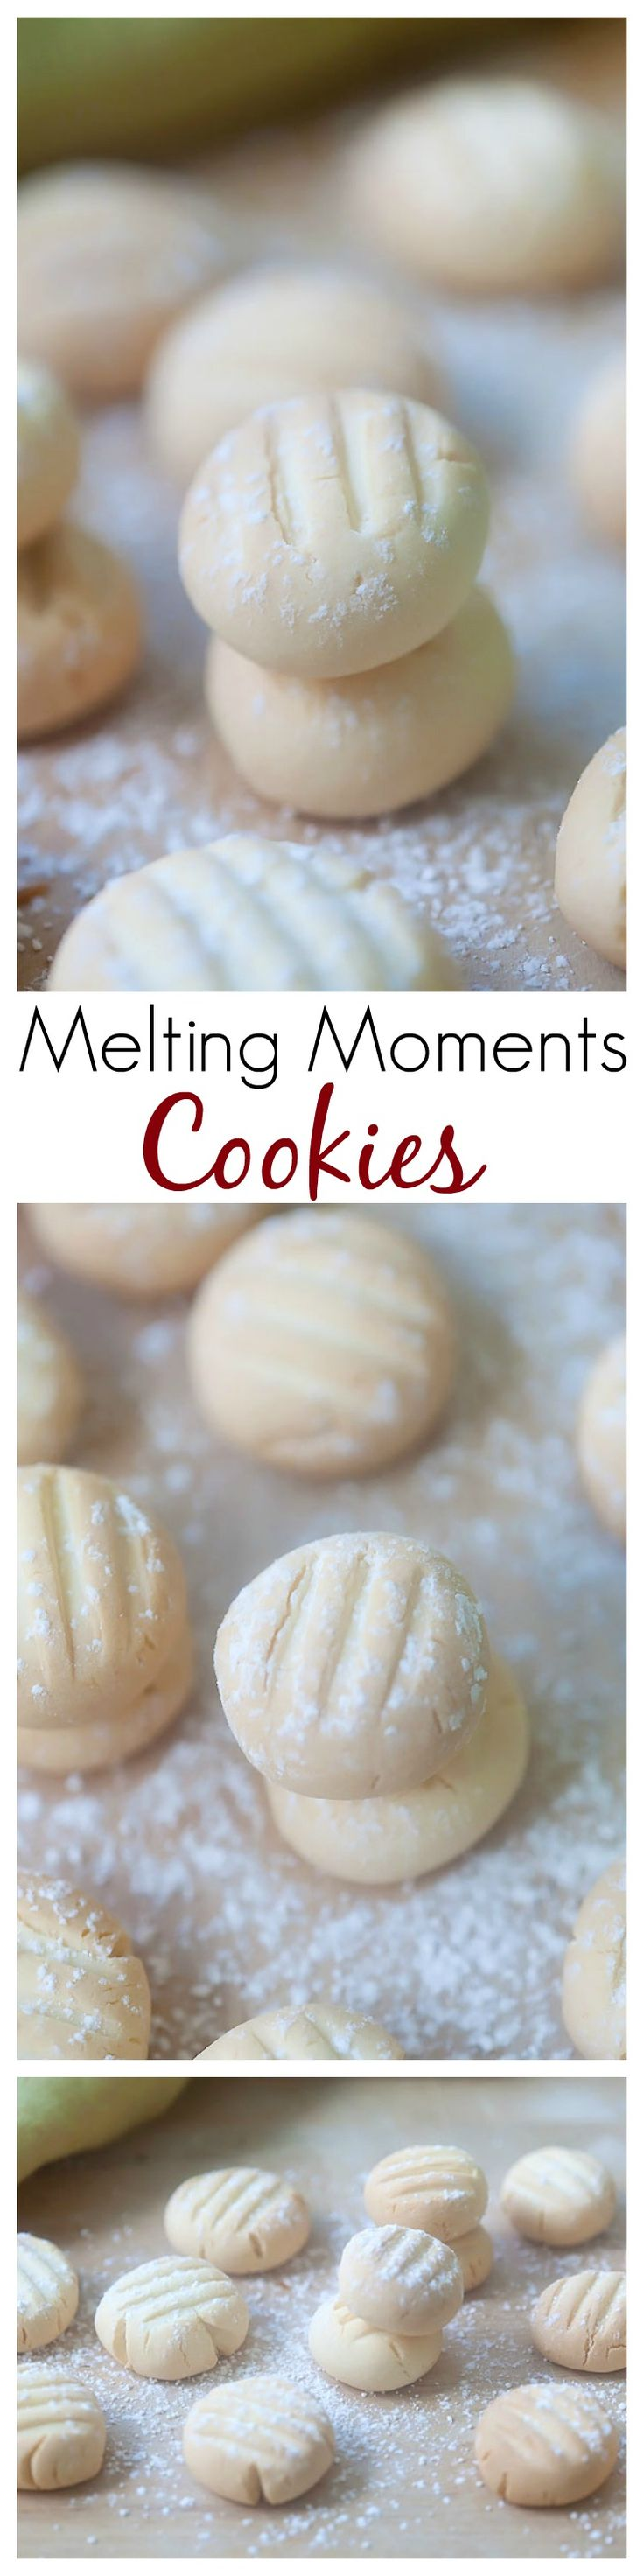 Melting Moments Cookies – the most crumbly, buttery, and delicious cookies ever. So easy to make but yields the best melting moments cookies   rasamalaysia.com